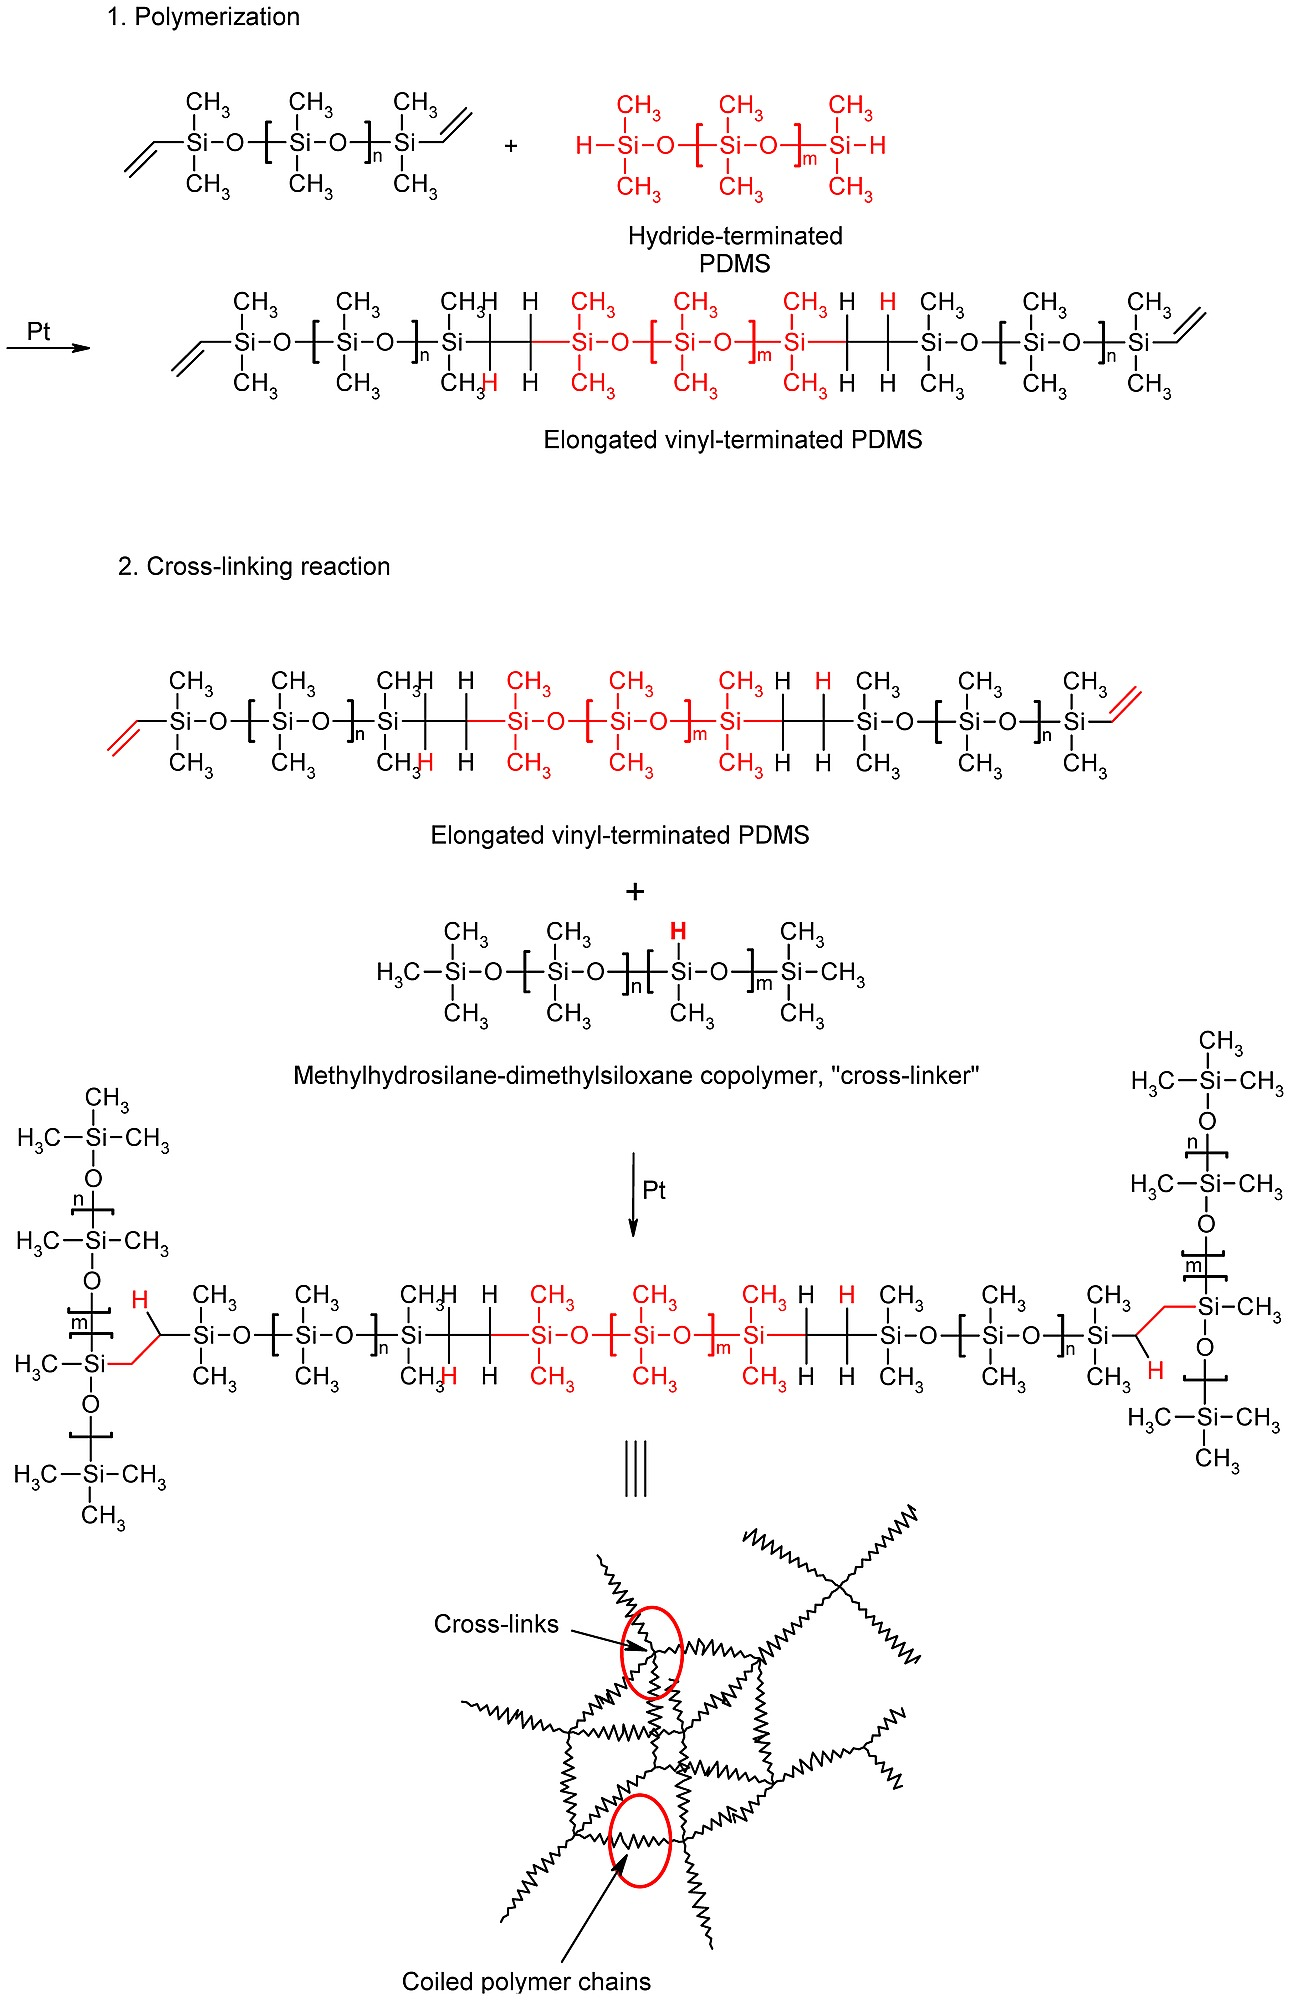 Synthesis of the silicone elastomer matrix